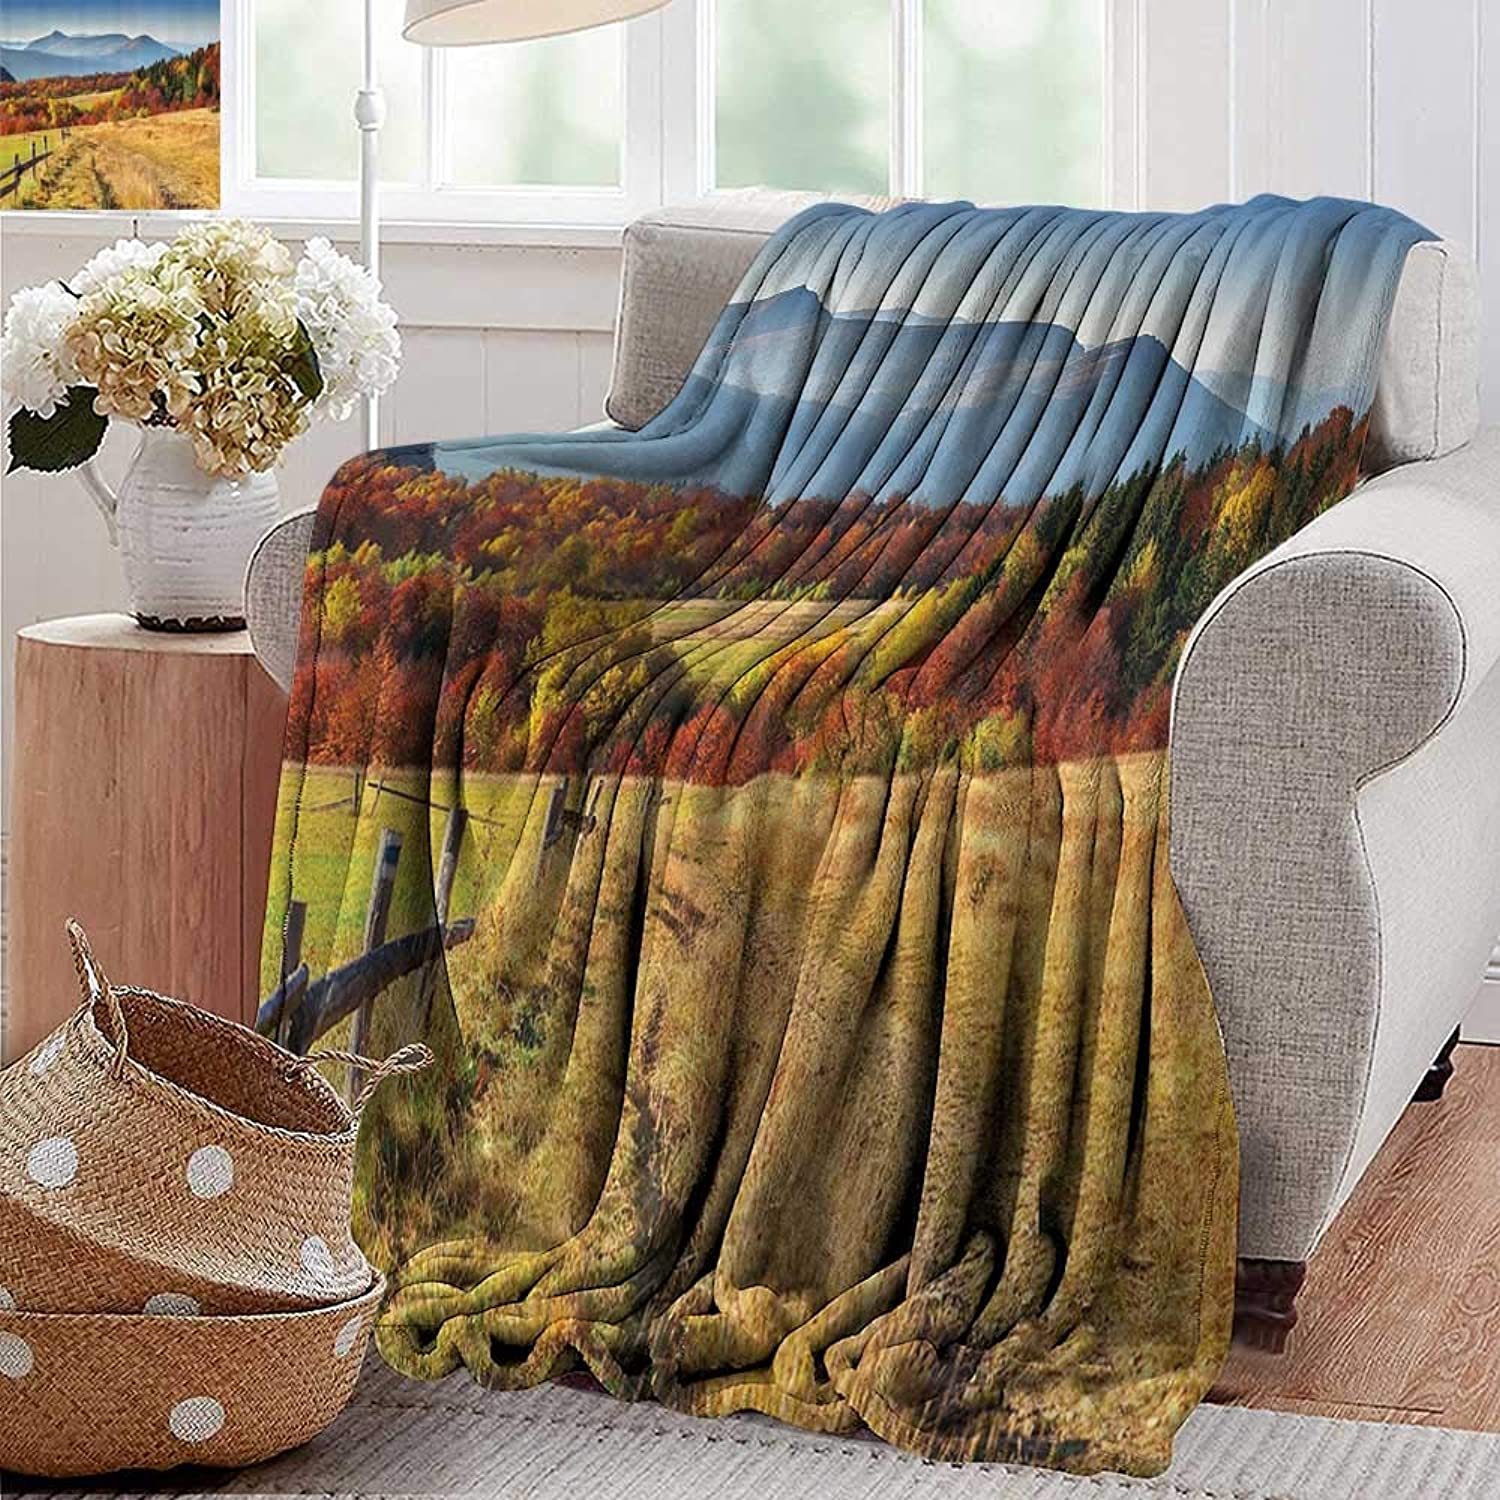 Weighted Blanket for Kids Woodsy Countryside Fences Farm Sunny Warm Fall Weather Calming View Paprika Olive bluee Weighted Blanket for Adults Kids Better Deeper Sleep 35 x60